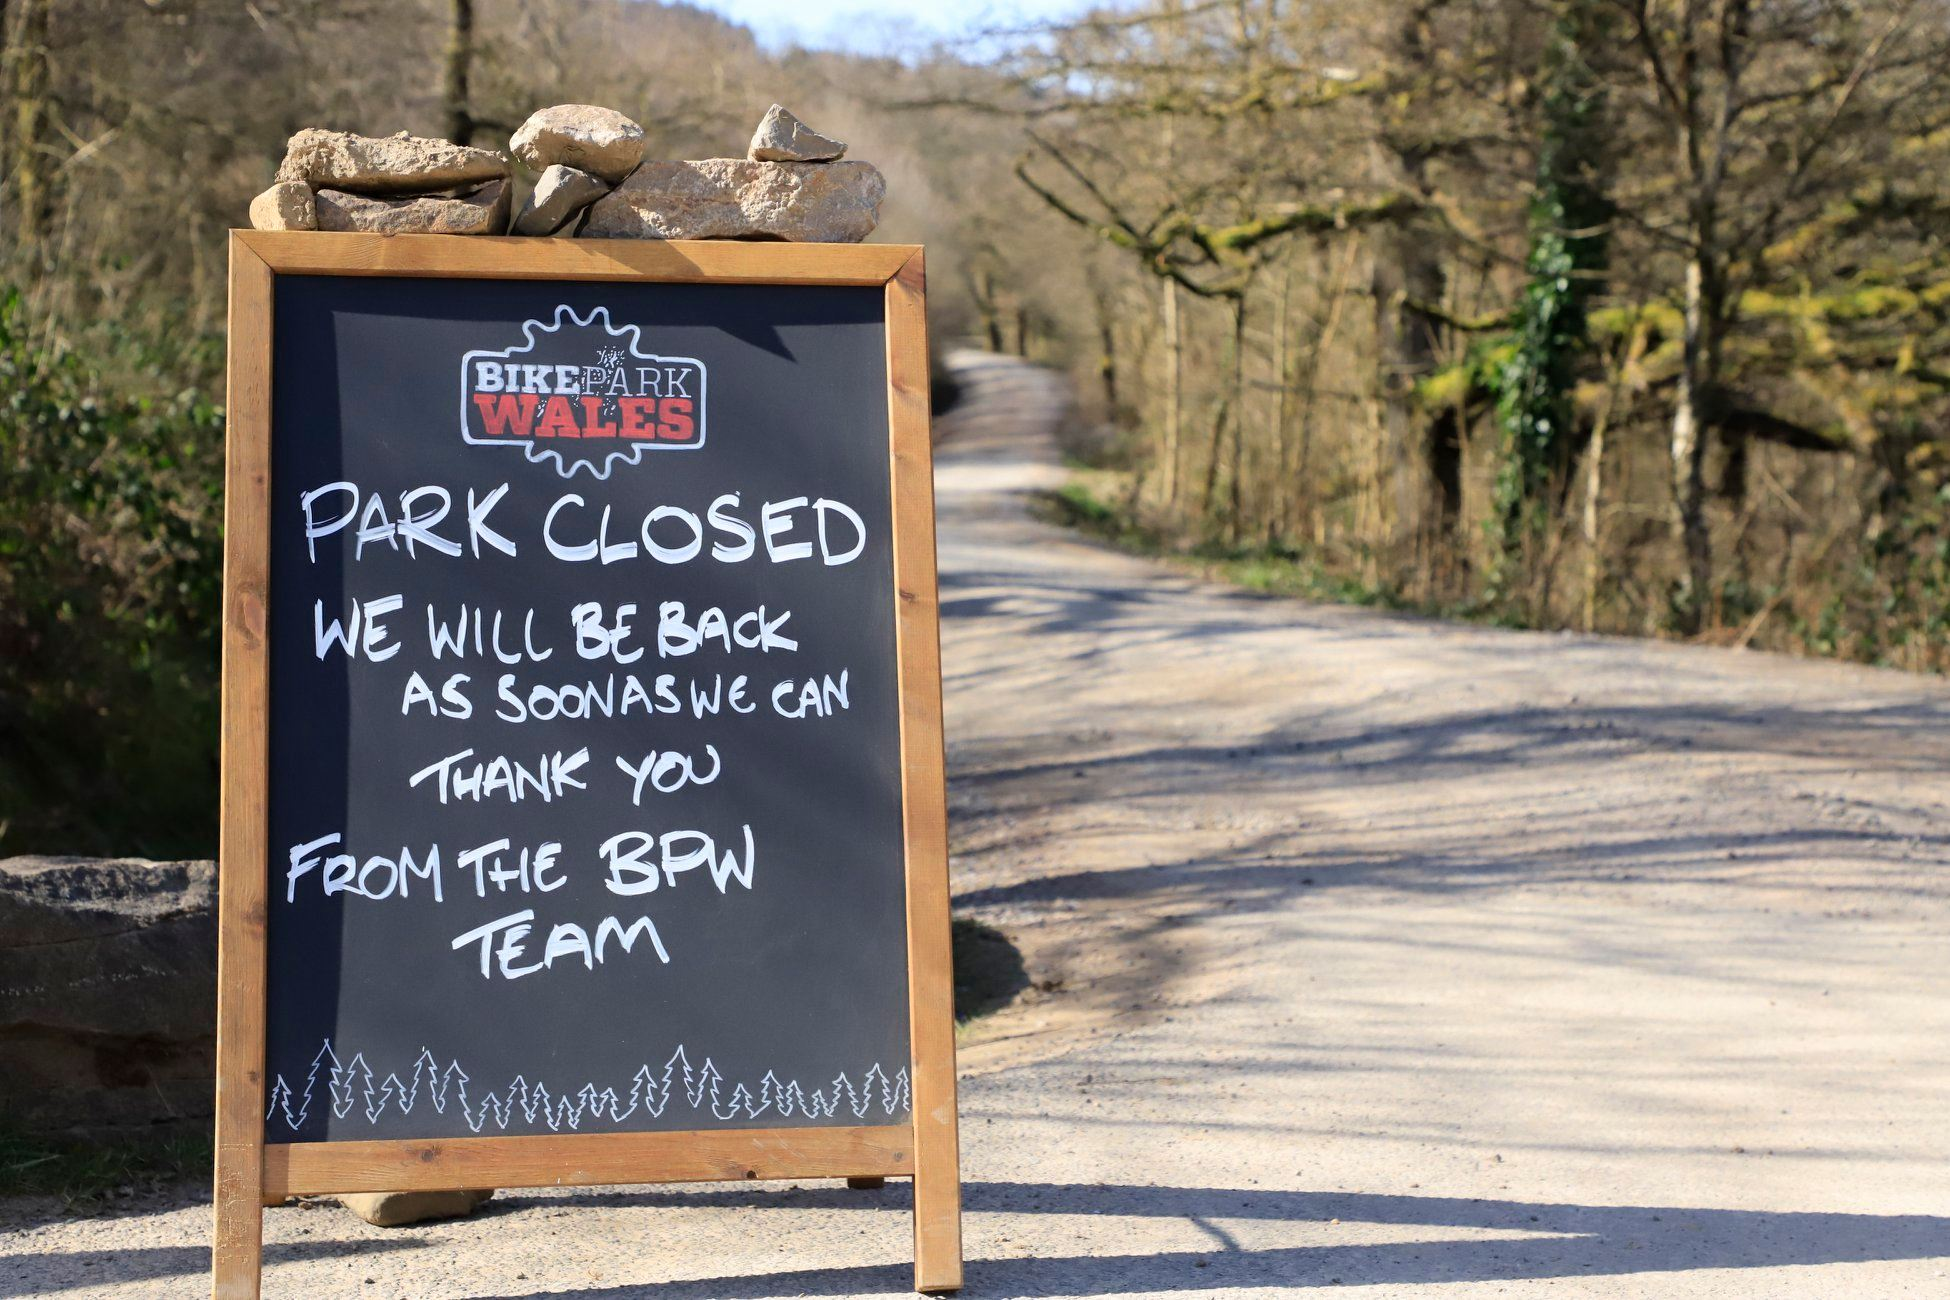 BikePark Wales closed again due to local Covid restrictions - MBR